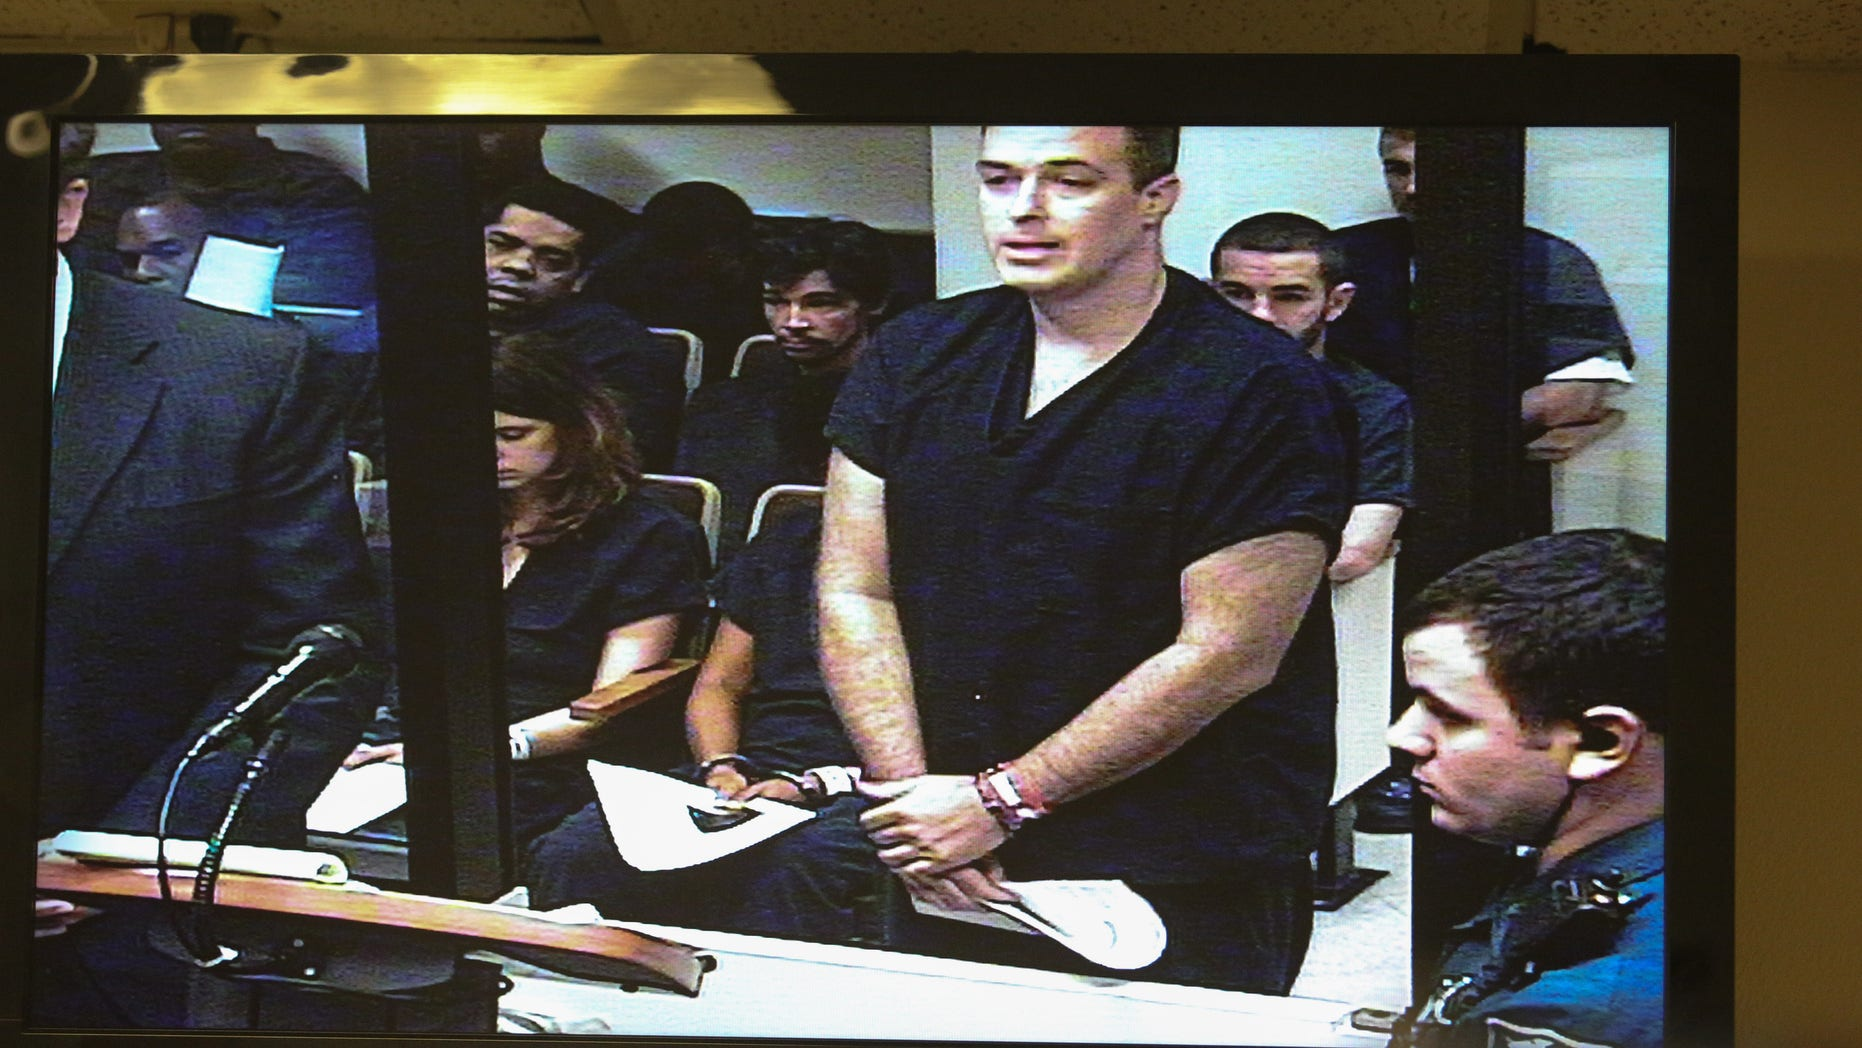 Matthew Apperson makes a first appearance in Seminole County court at the John E Polk correctional facility, seen on a video monitor,  in Sanford, Fla. on Saturday May 16, 2015. Apperson was charged Friday with aggravated assault with a deadly weapon, aggravated battery with a deadly weapon and firing a deadly missile into an occupied conveyance stemming from an incident involving George Zimmerman earlier in the week.  (Joshua C. Cruey/Orlando Sentinel via AP) MAGS OUT; NO SALES